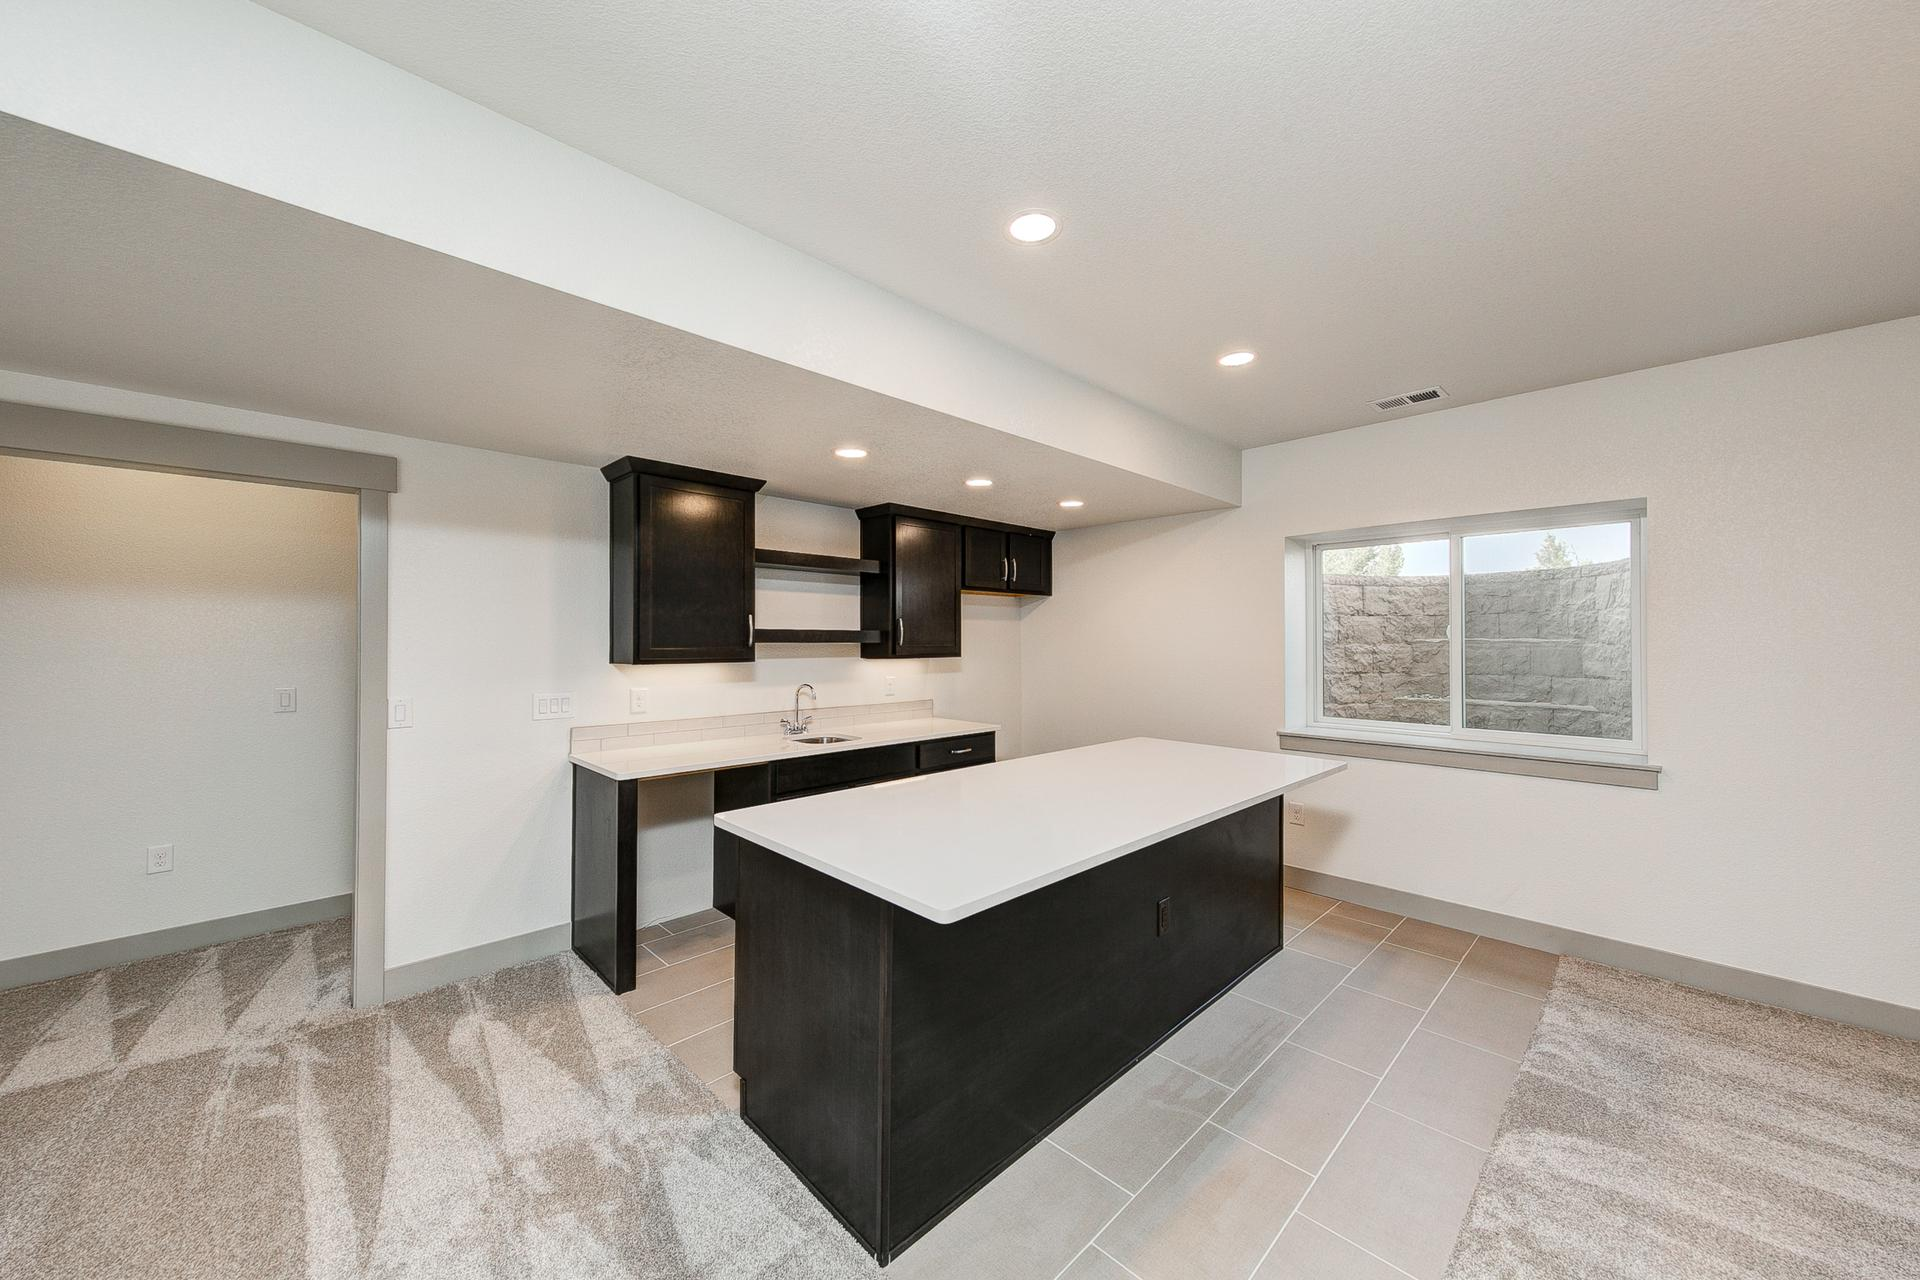 Finished Basement - Not Actual Home - Finishes Will Vary